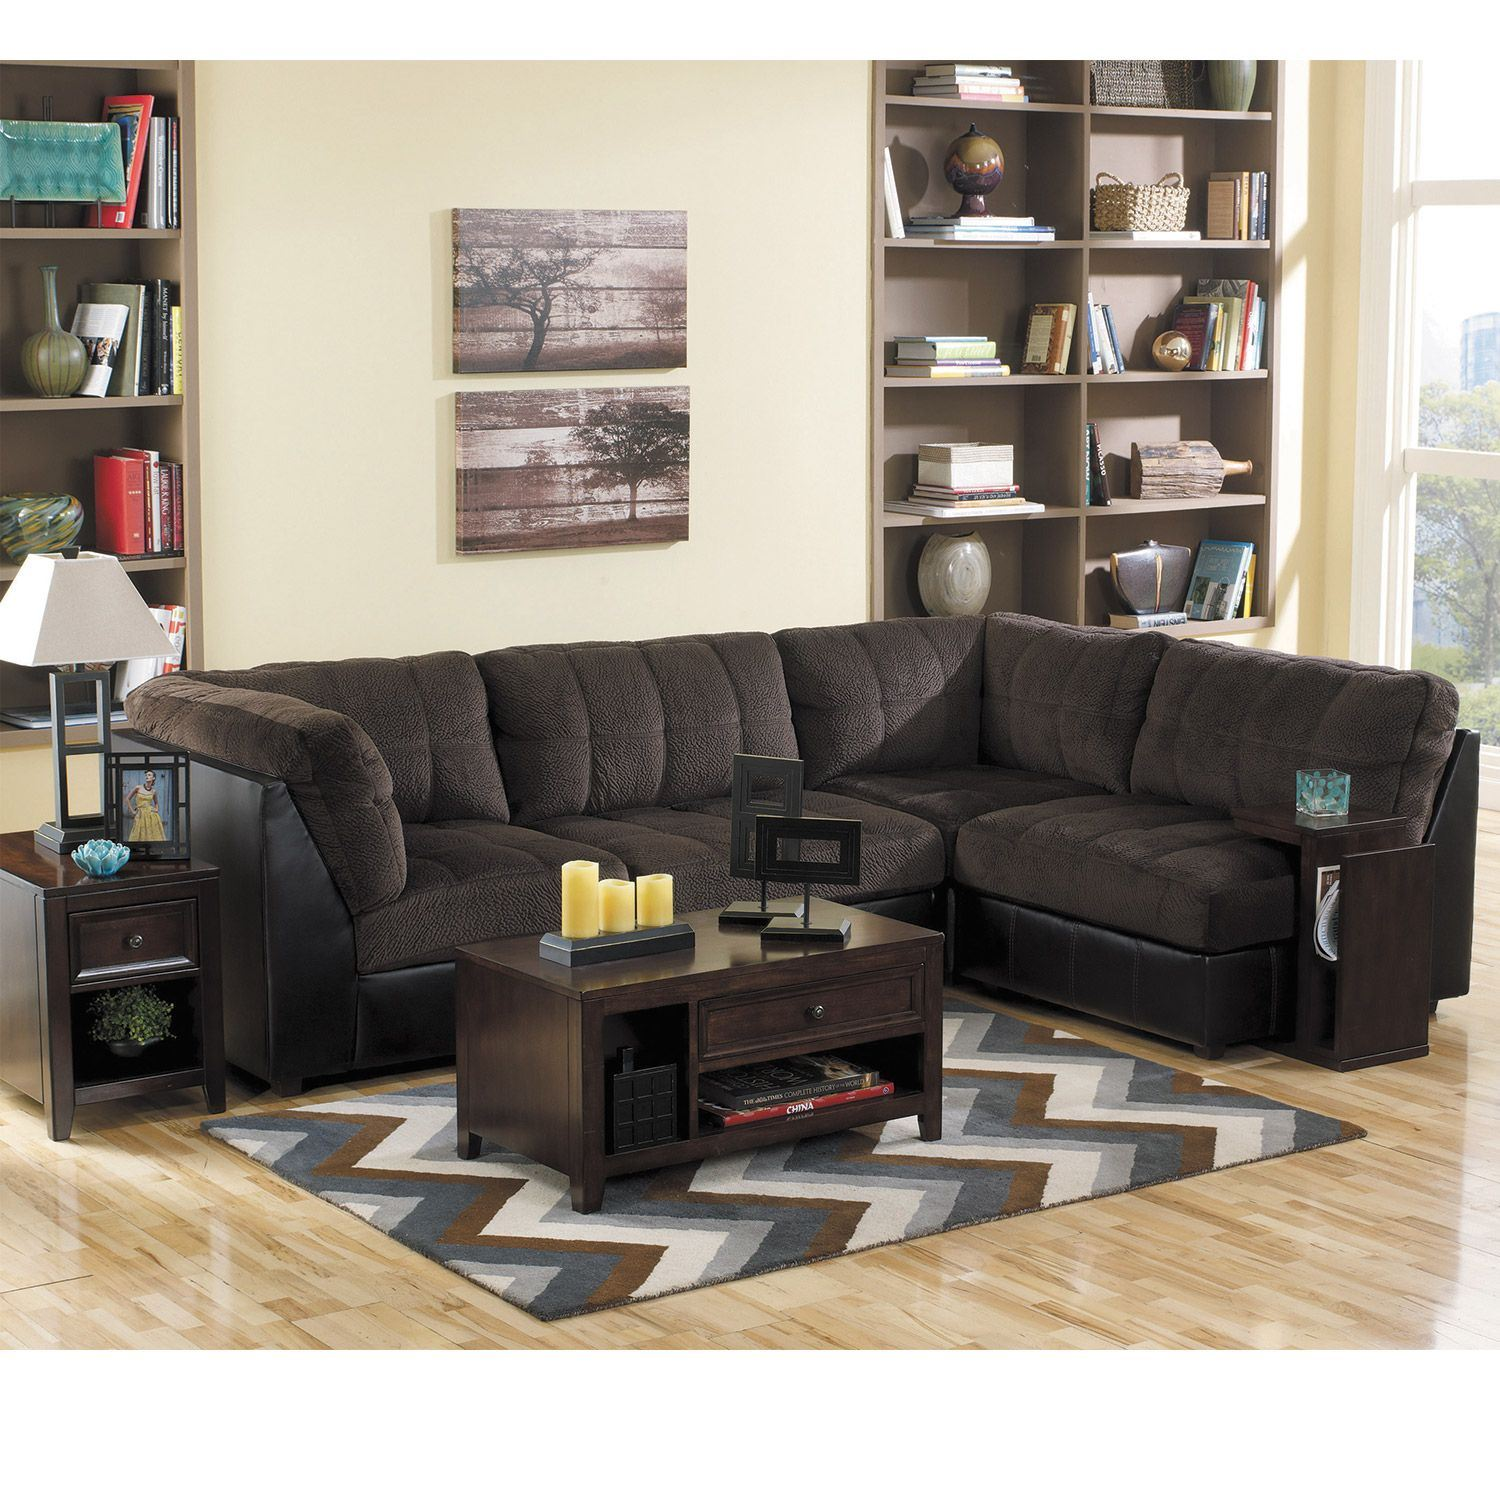 Discount living room furniture 100 buy living room chairs for Affordable furniture wholesale